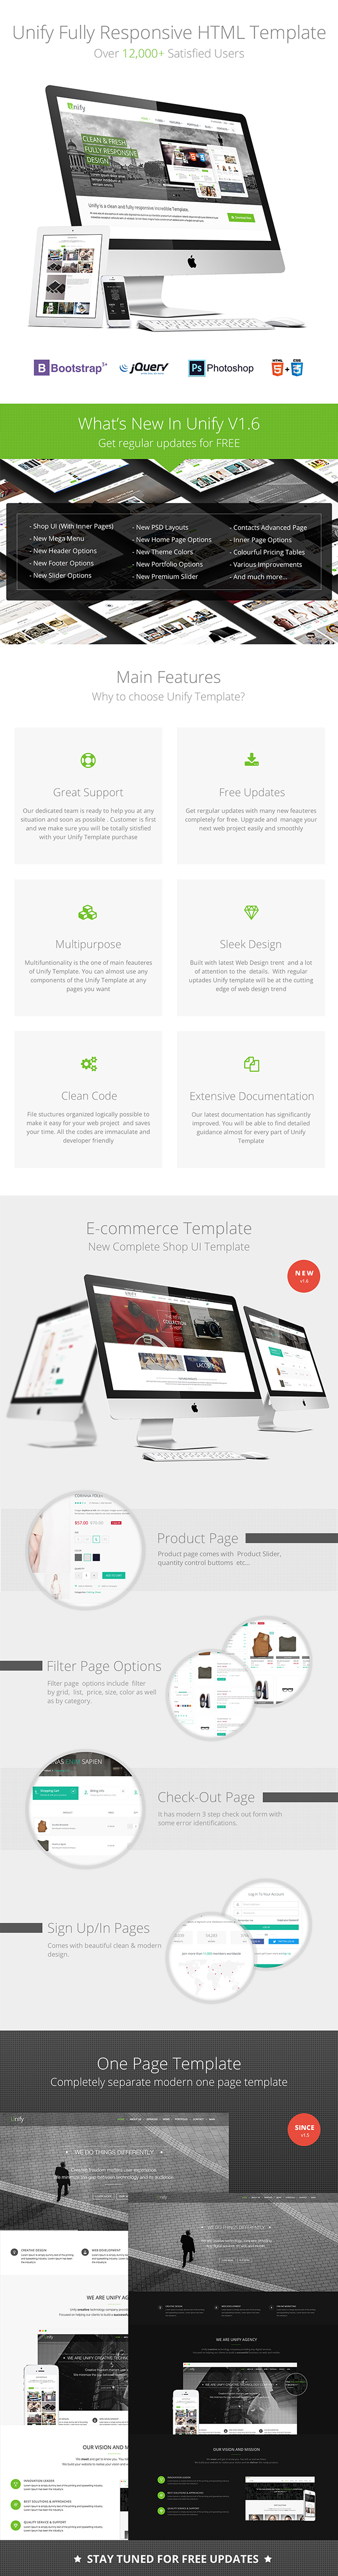 Unify Template comes with 3 complete independent Templates